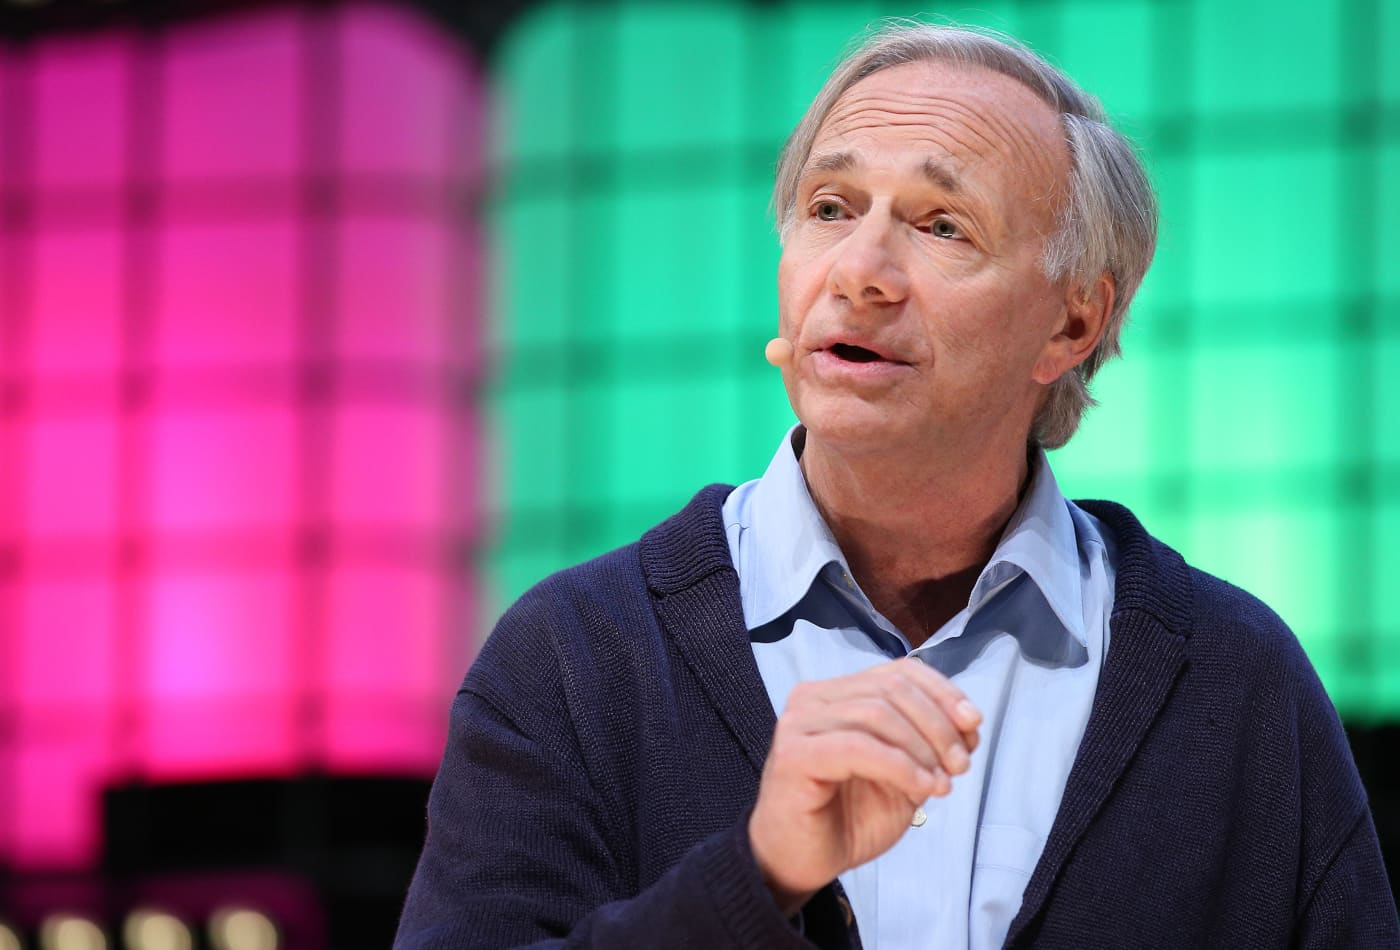 Billionaire Ray Dalio on his big bet that failed: 'I went broke and had to borrow $4,000 from my dad'